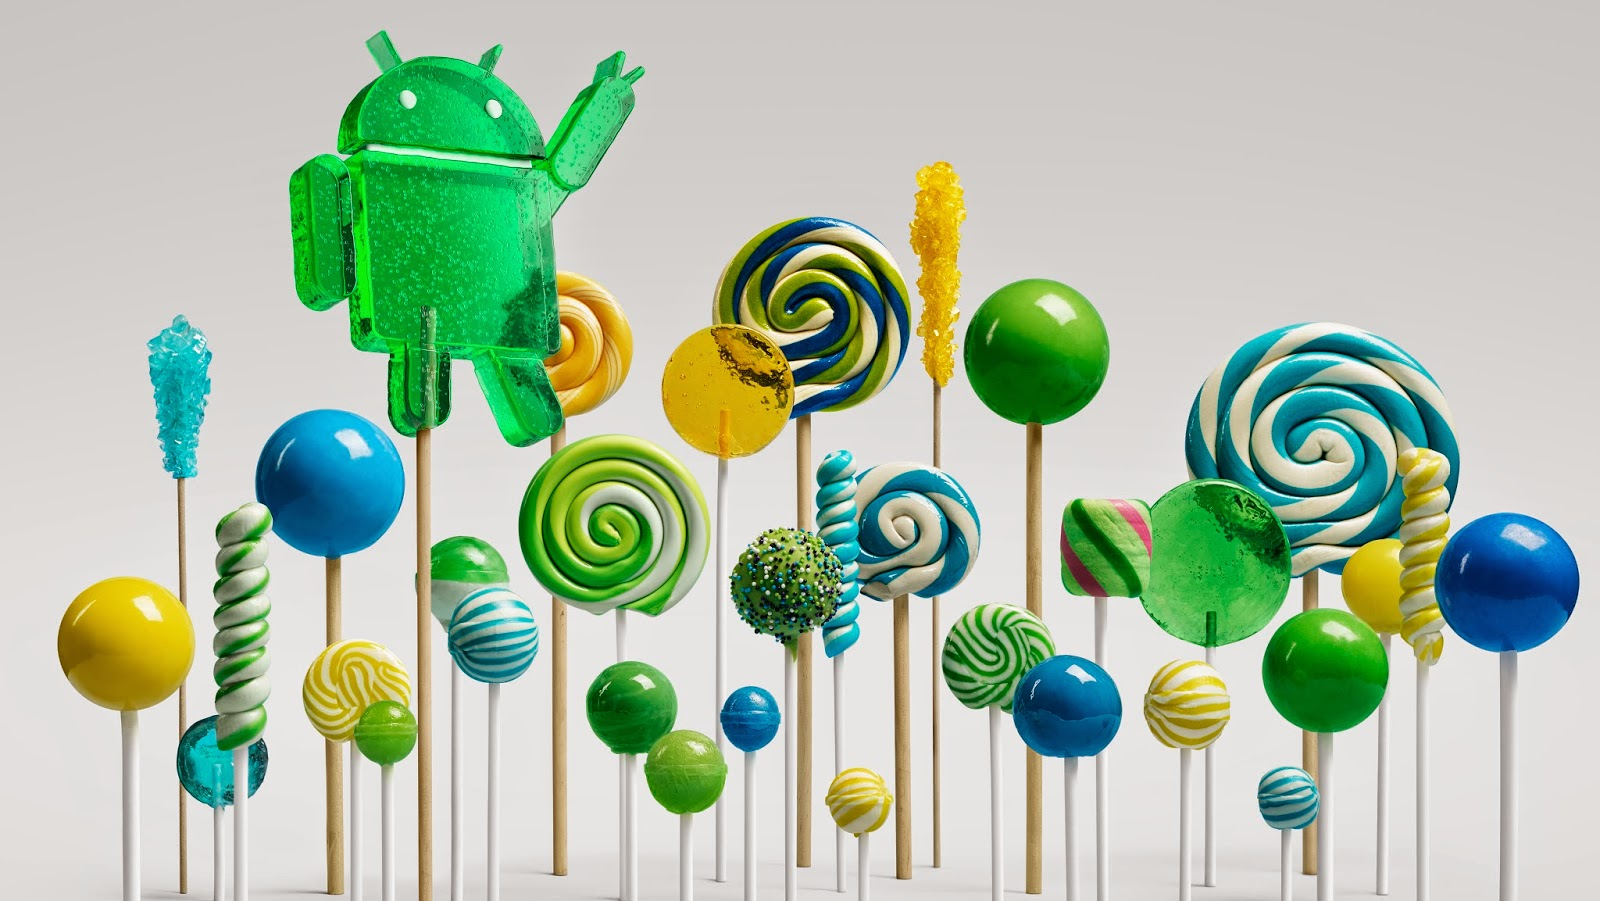 Android android 5.1 Google lollipop